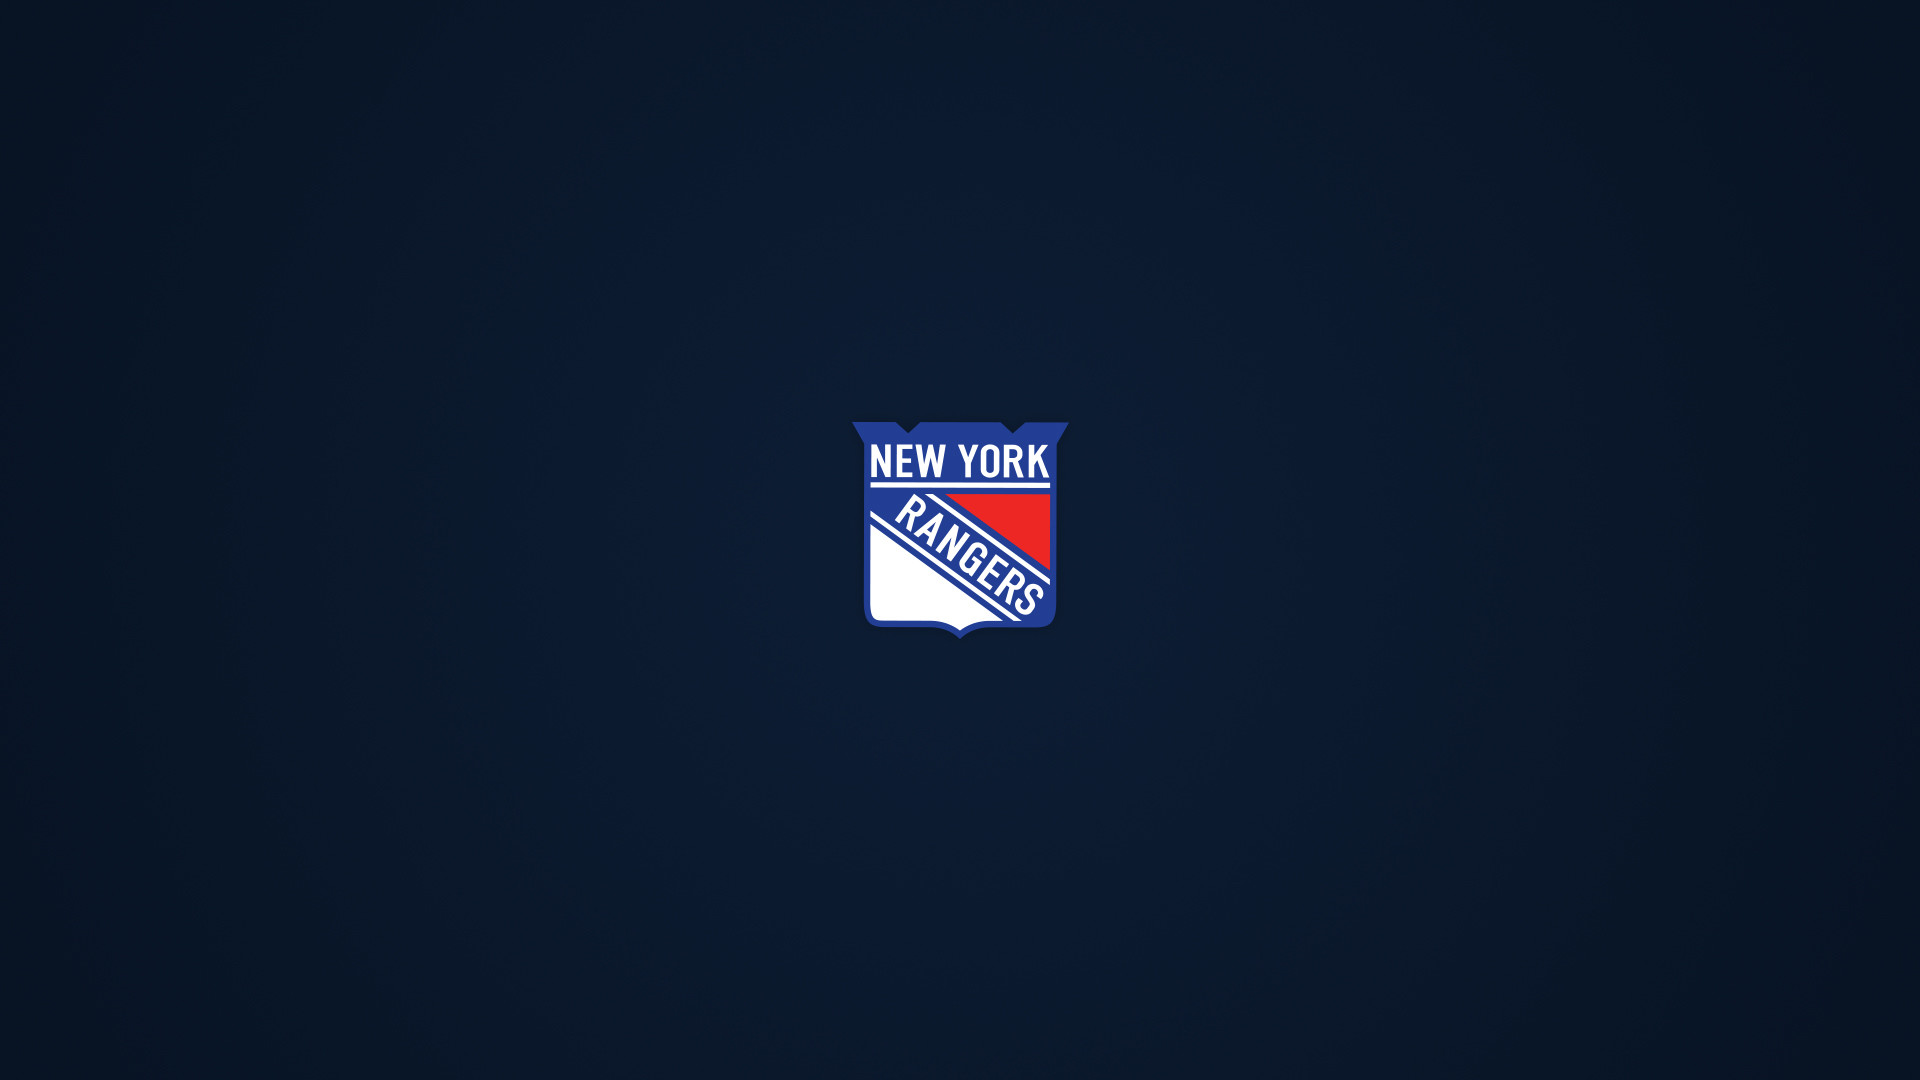 1920x1080 I wasn't crazy about the Rangers minimalist wallpaper on /r/hockey